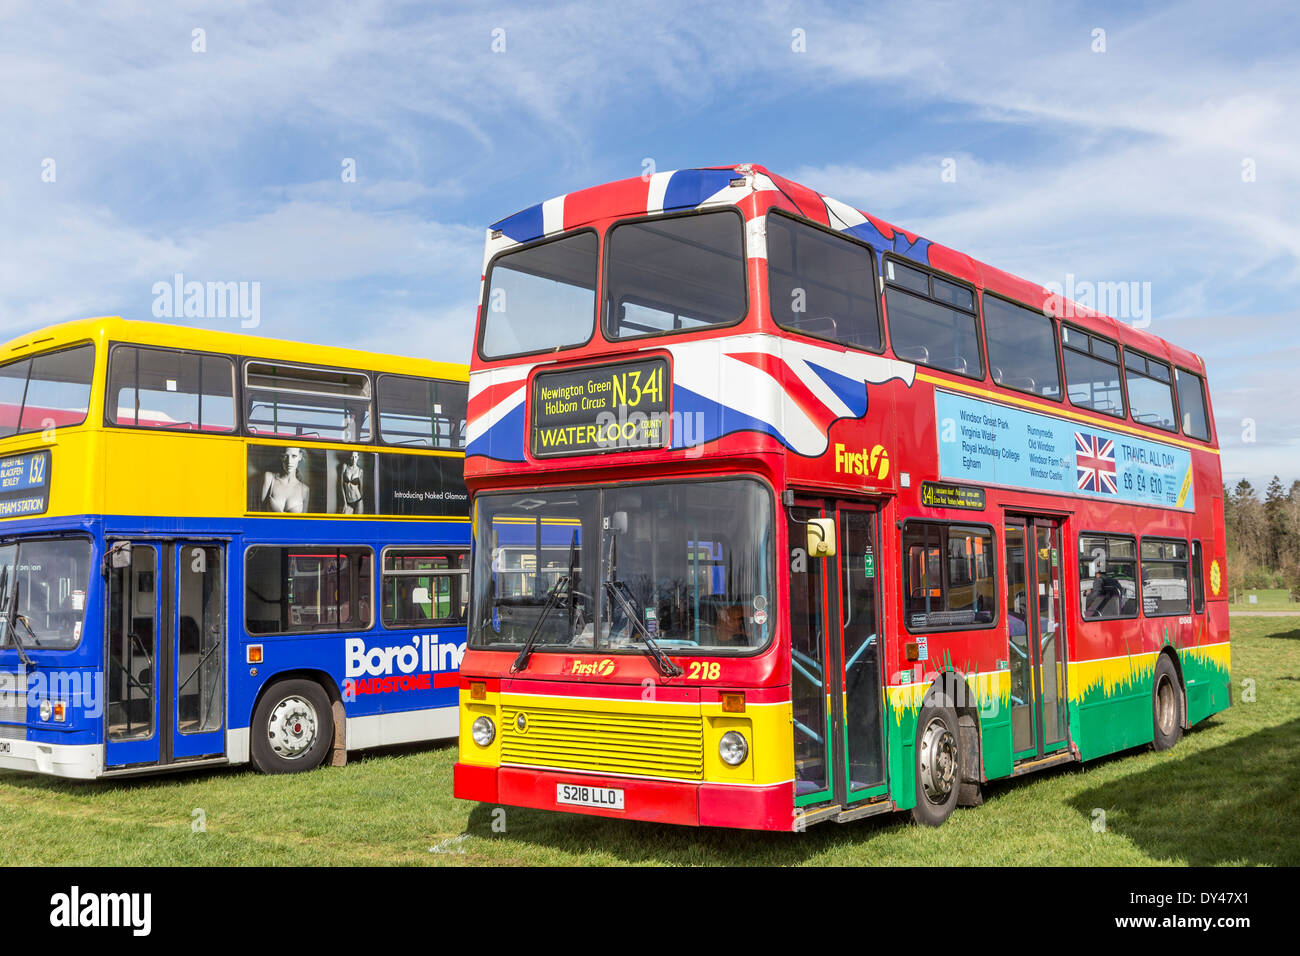 Colourful Modern Buses at Display of Heritage Vehicles - Stock Image